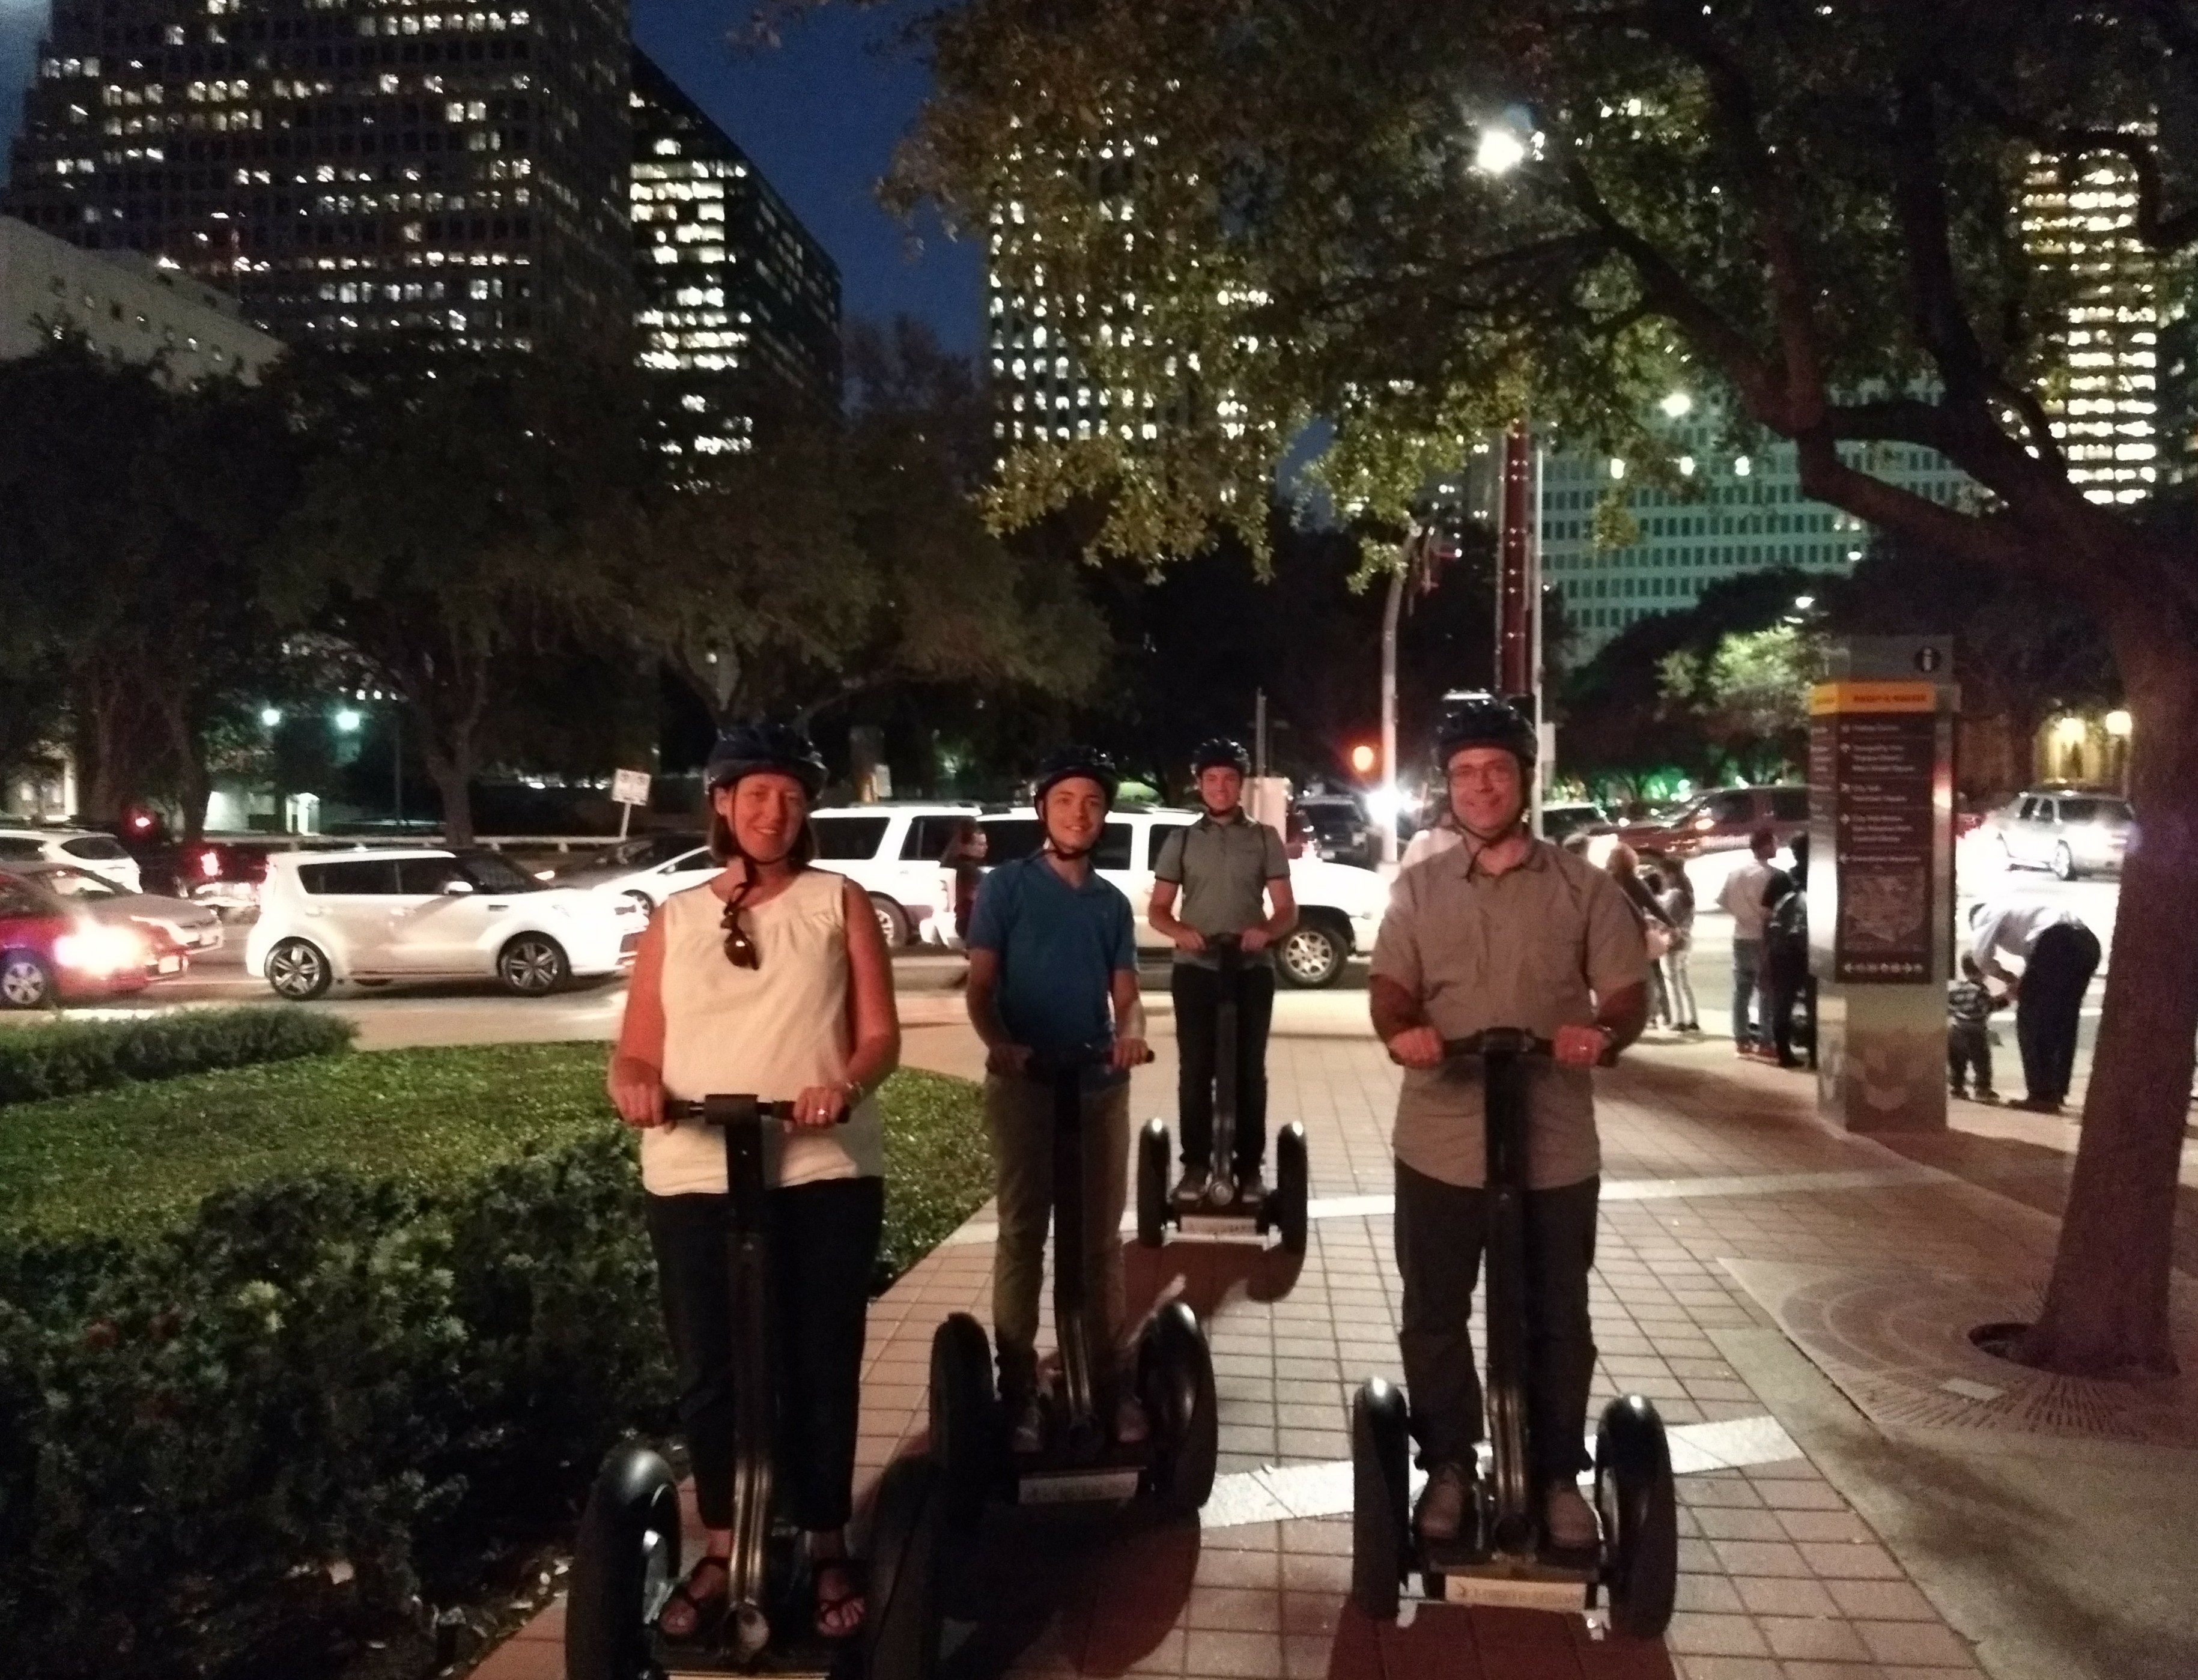 As the stars look down, the best of all our tours....Segway Tours Of Houston's Bayou TWILIGHT TOUR